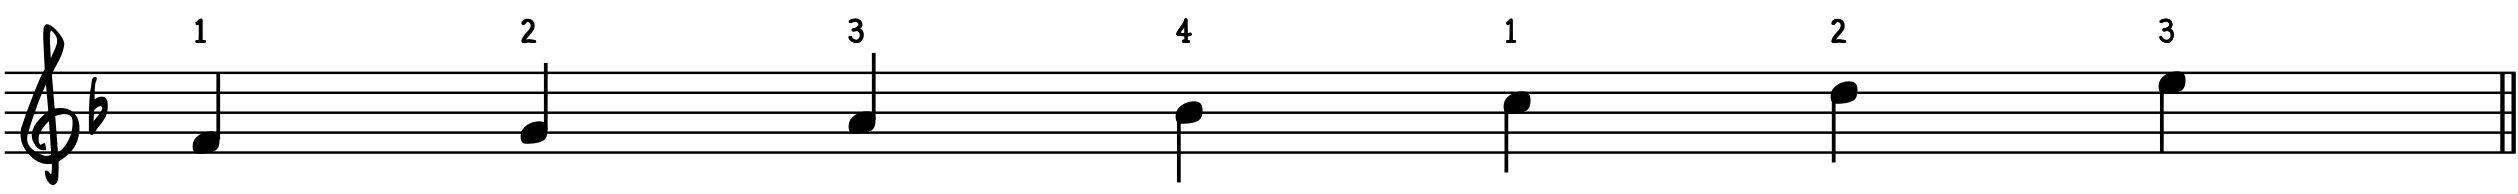 F Major Scale with Piano Fingerings